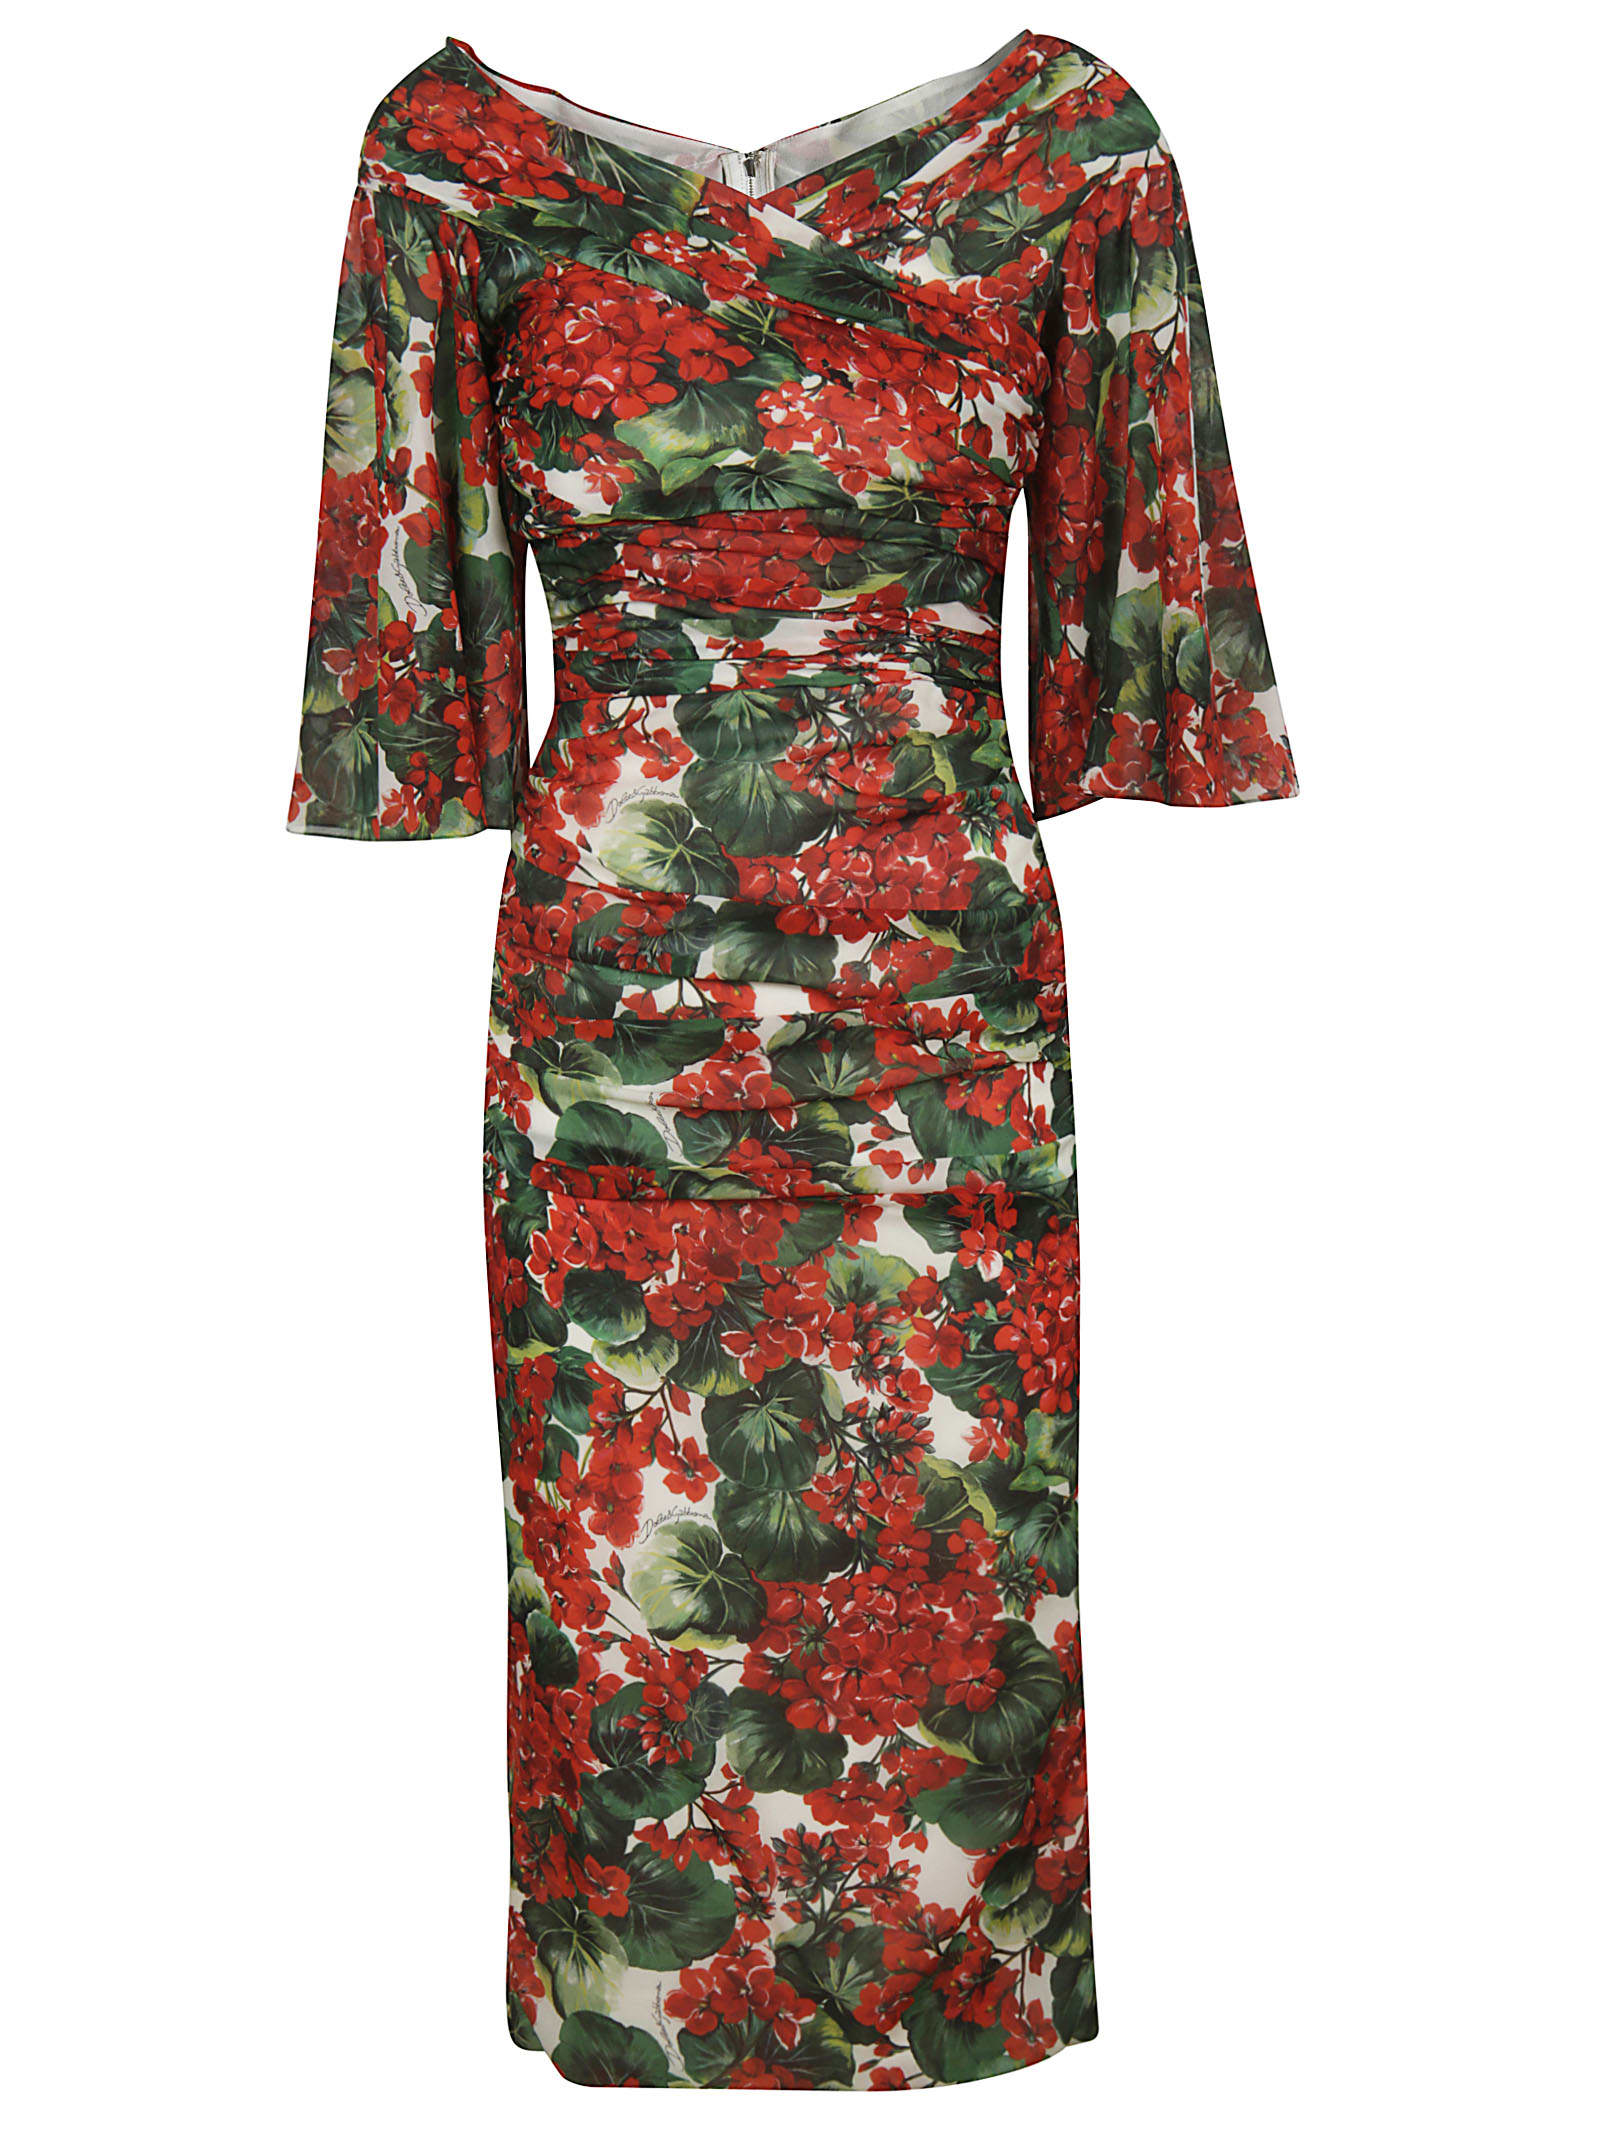 Buy Dolce & Gabbana Floral Print Dress online, shop Dolce & Gabbana with free shipping